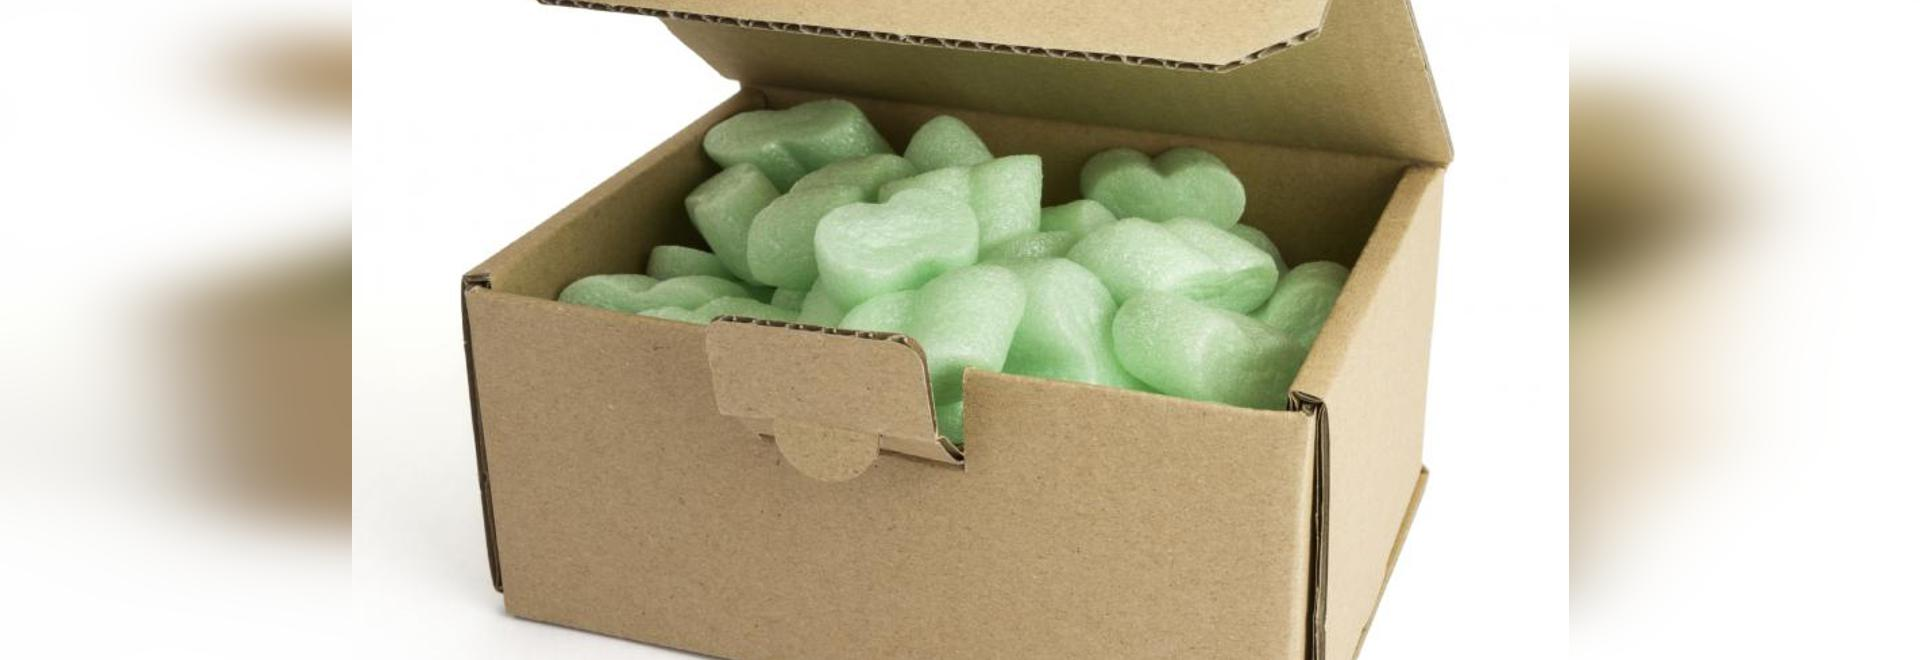 Protective packaging market to see growth